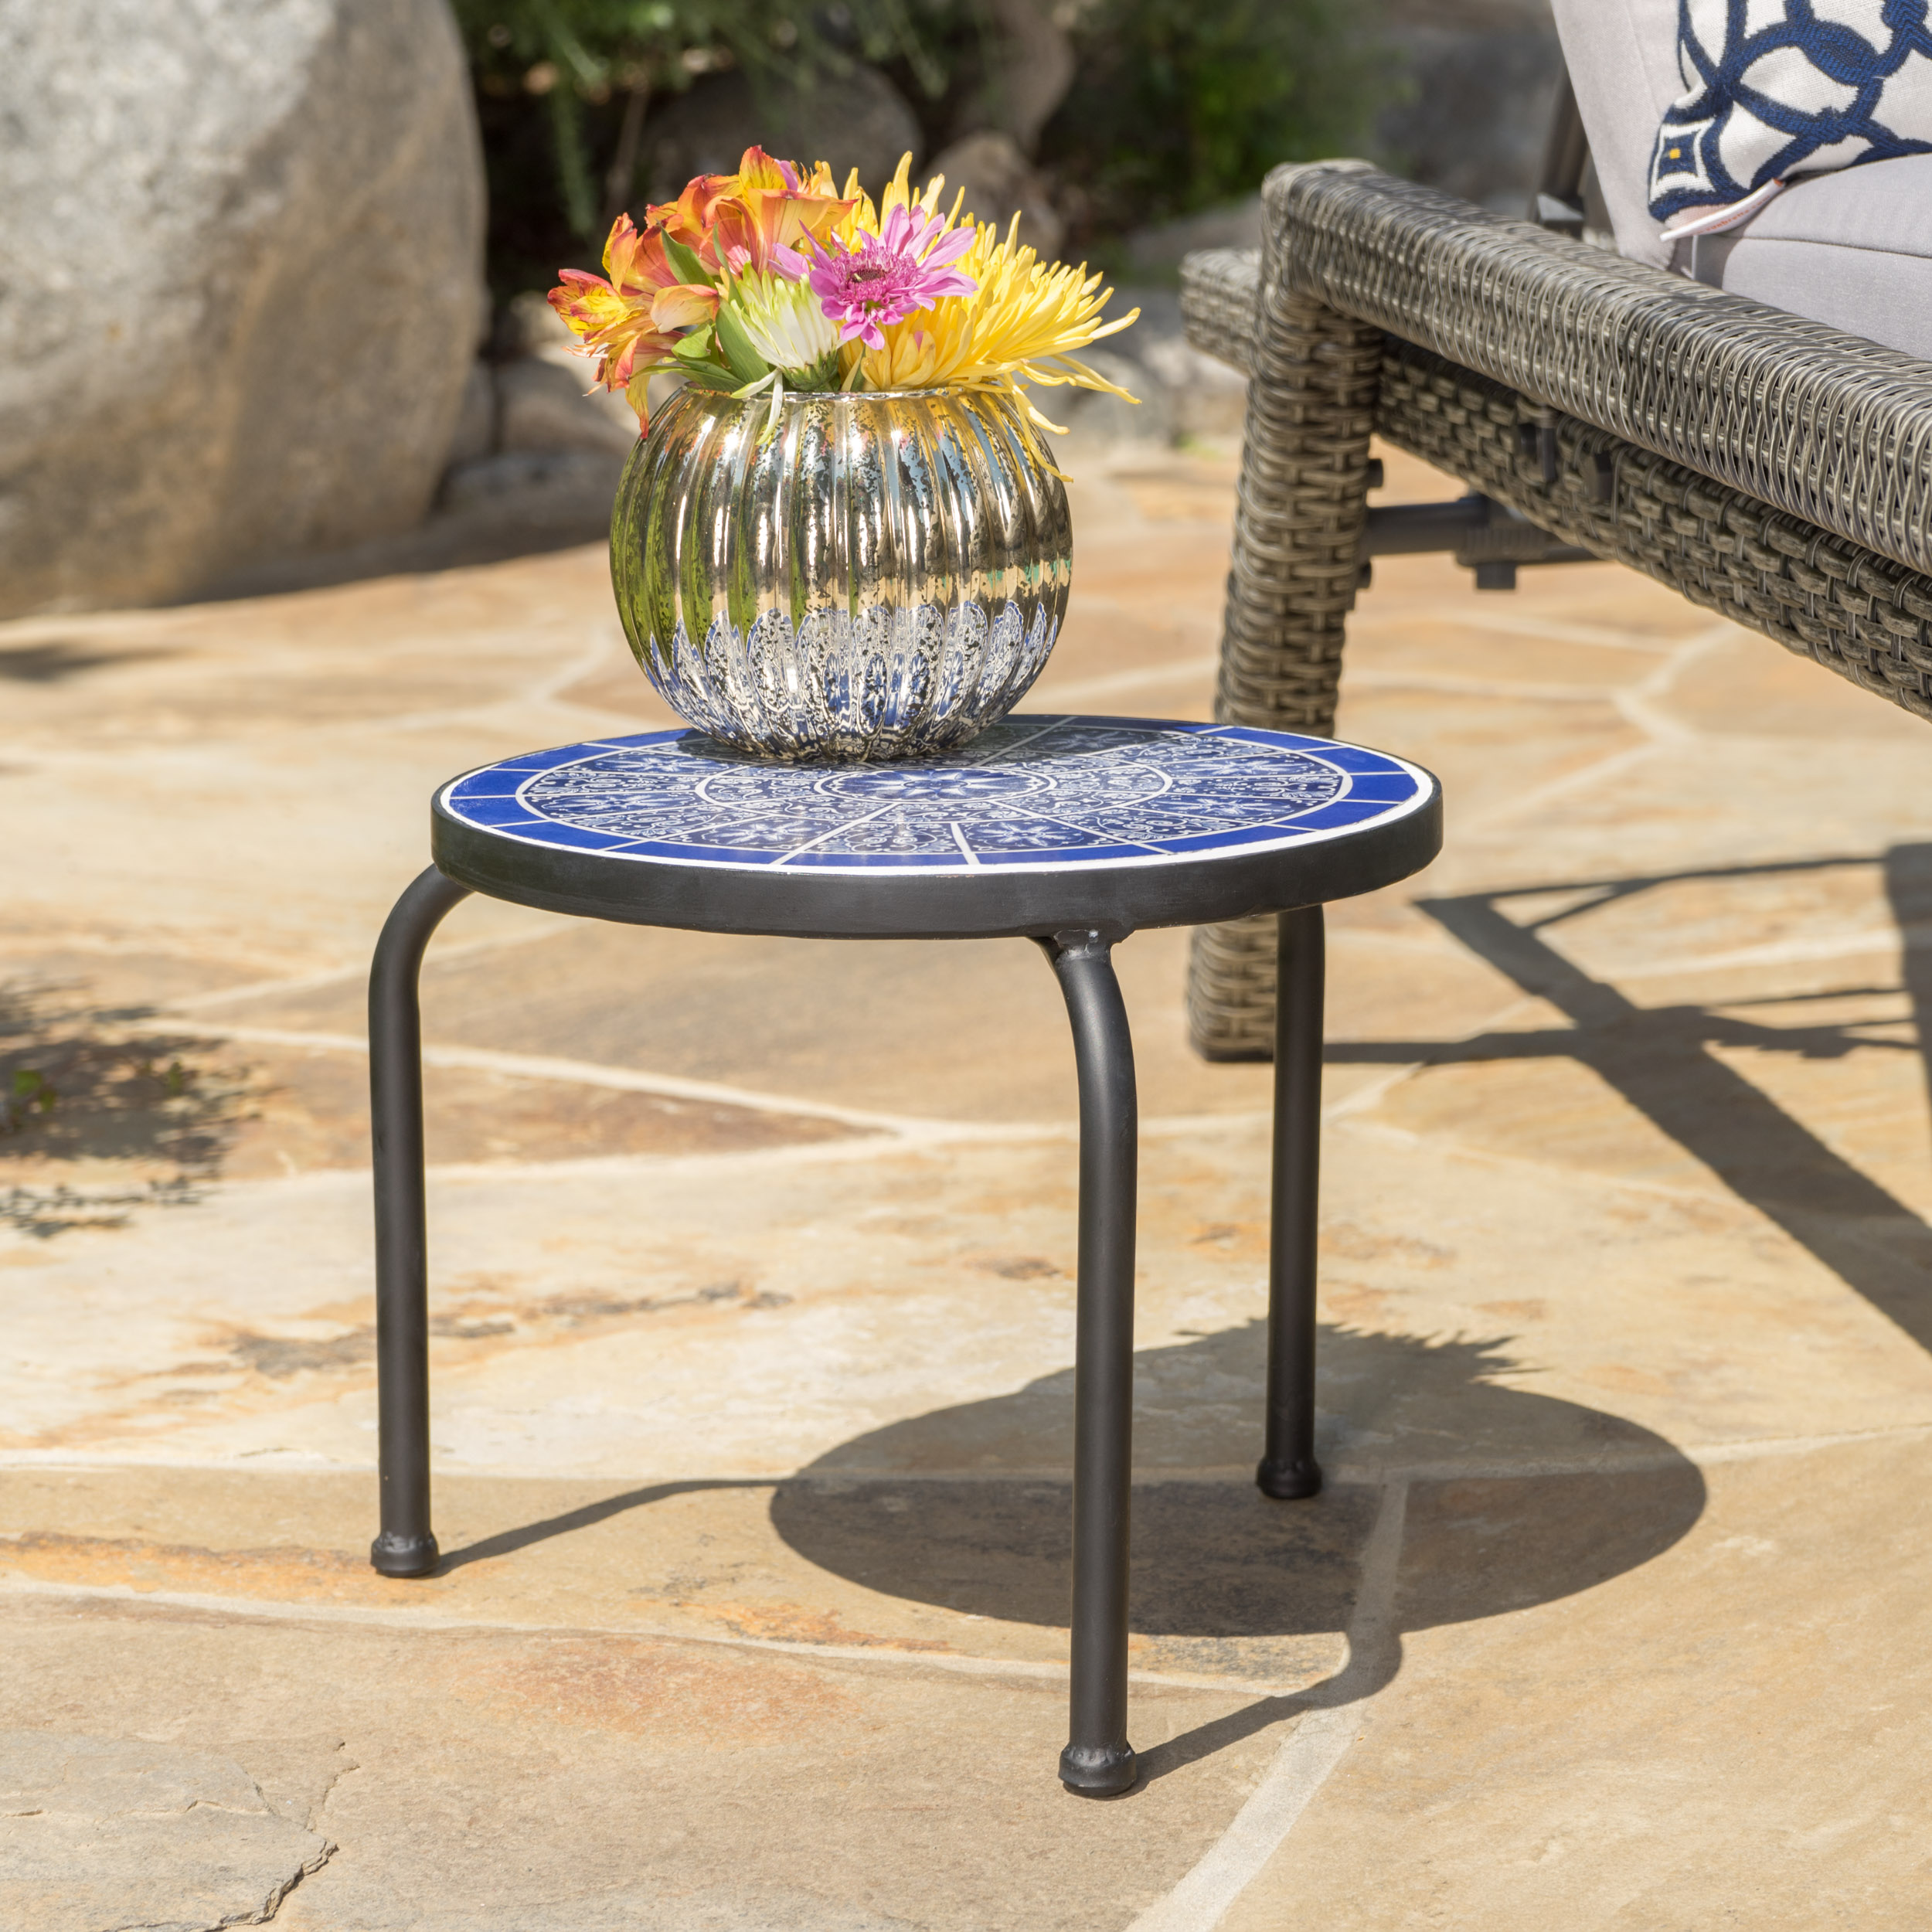 bryan outdoor ceramic tile side table with iron frame blue and white accent hand painted furniture teal bedroom accessories small cocktail tables for spaces used concrete console